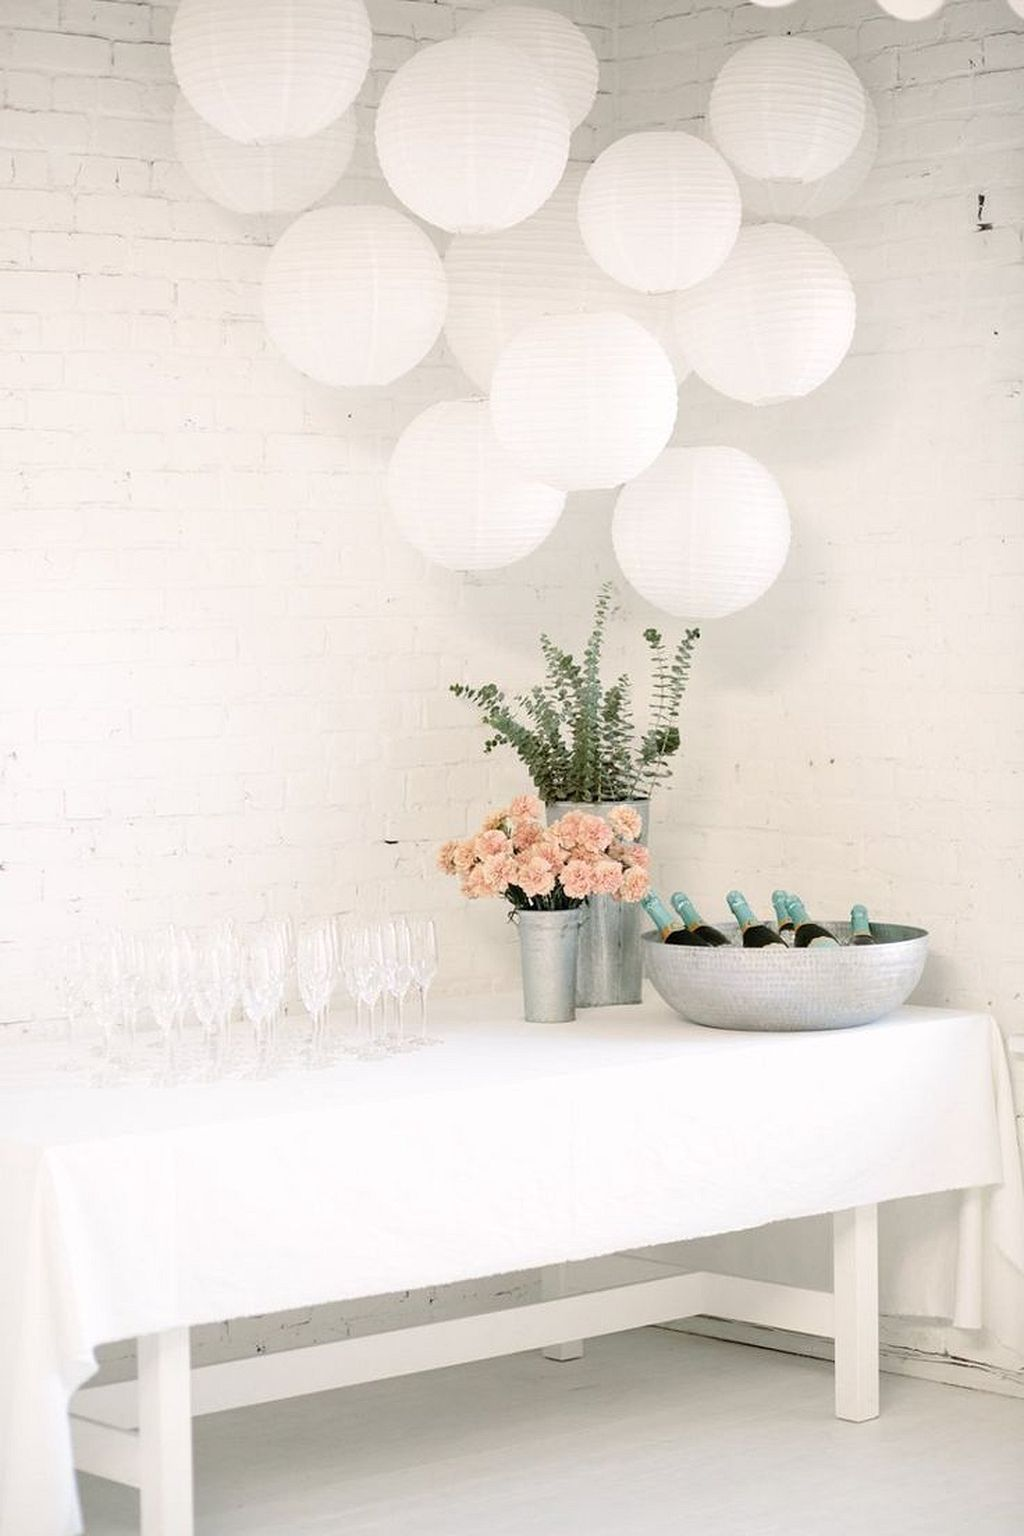 Awesome 50+ Engagement Party Ideas //weddmagz.com/50-engagement-party- ideas/ & 50+ Engagement Party Ideas | Engagement Bridal showers and Wedding